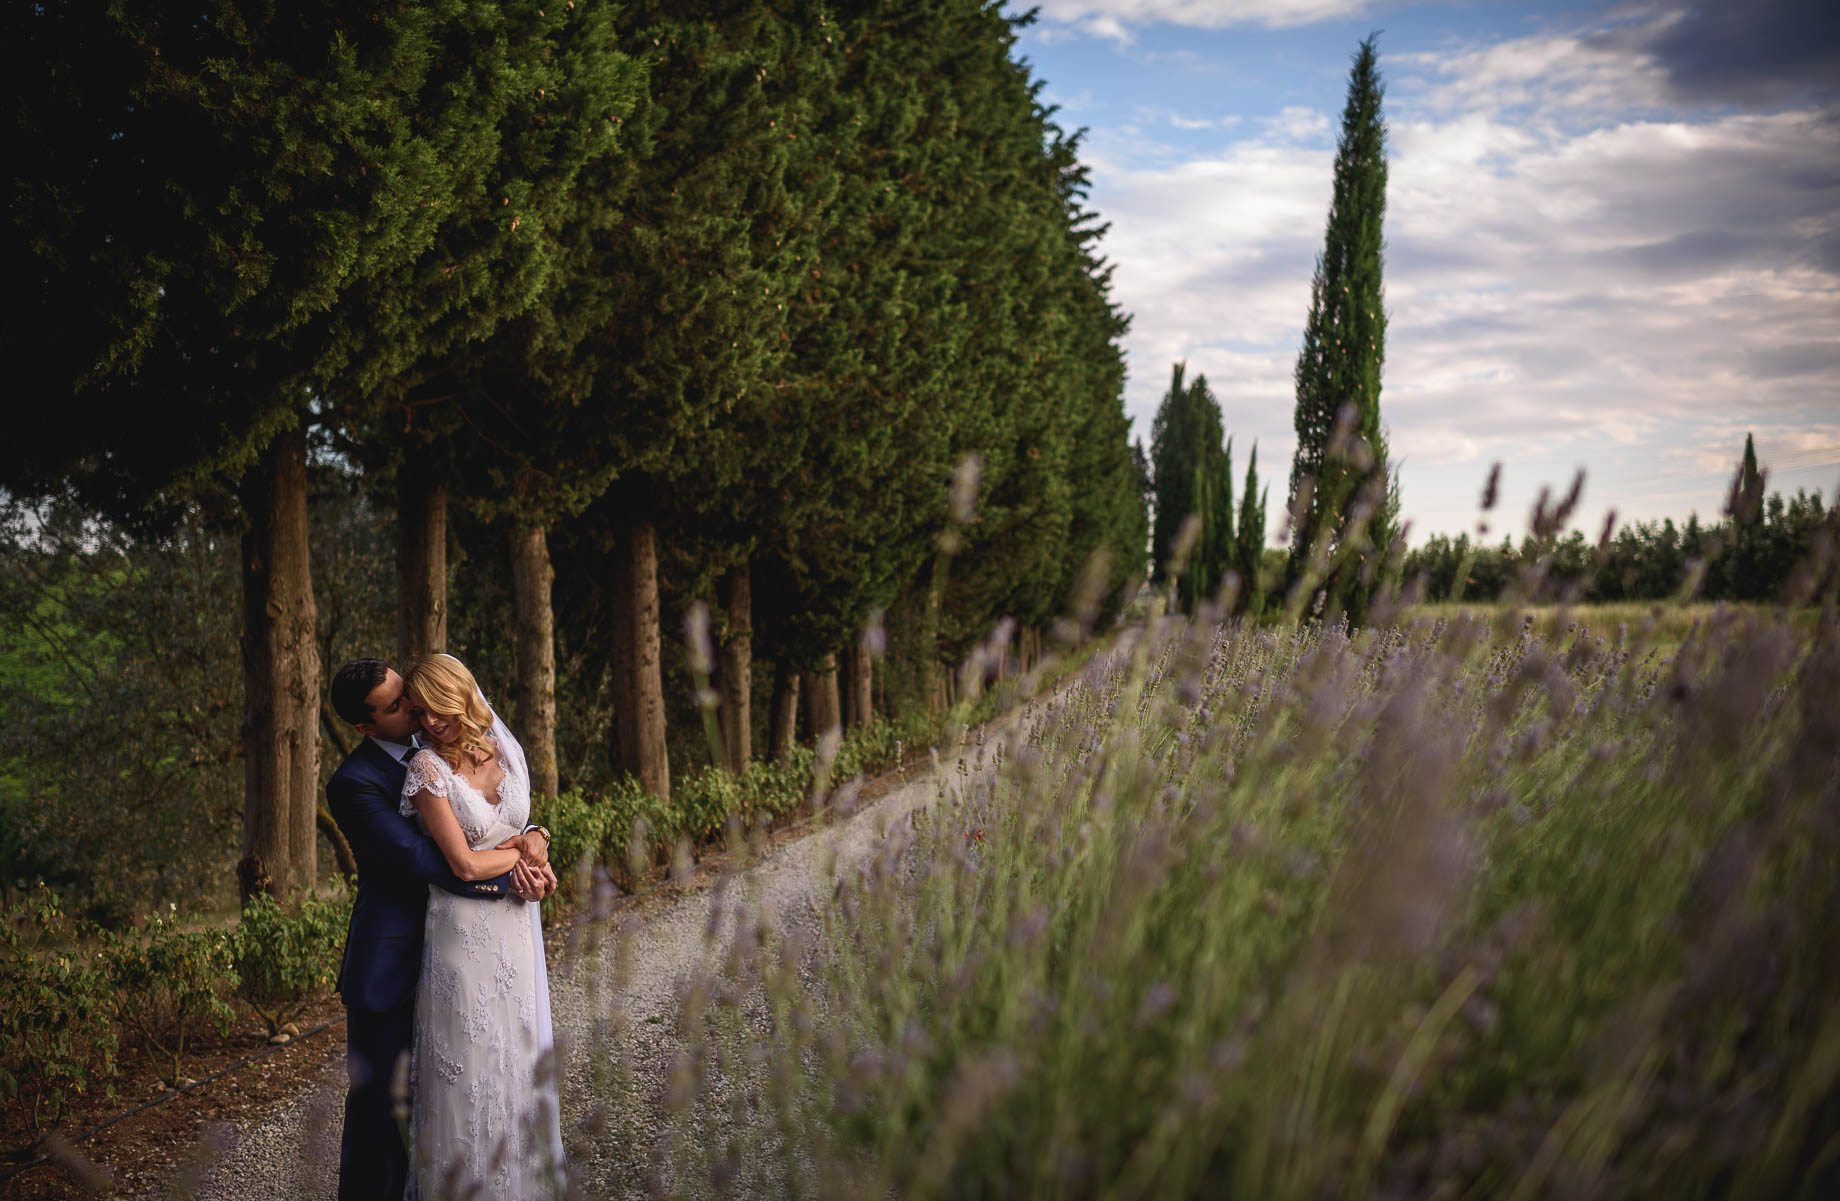 Tuscany wedding photography - Roisin and Moubin - Guy Collier Photography (146 of 251)